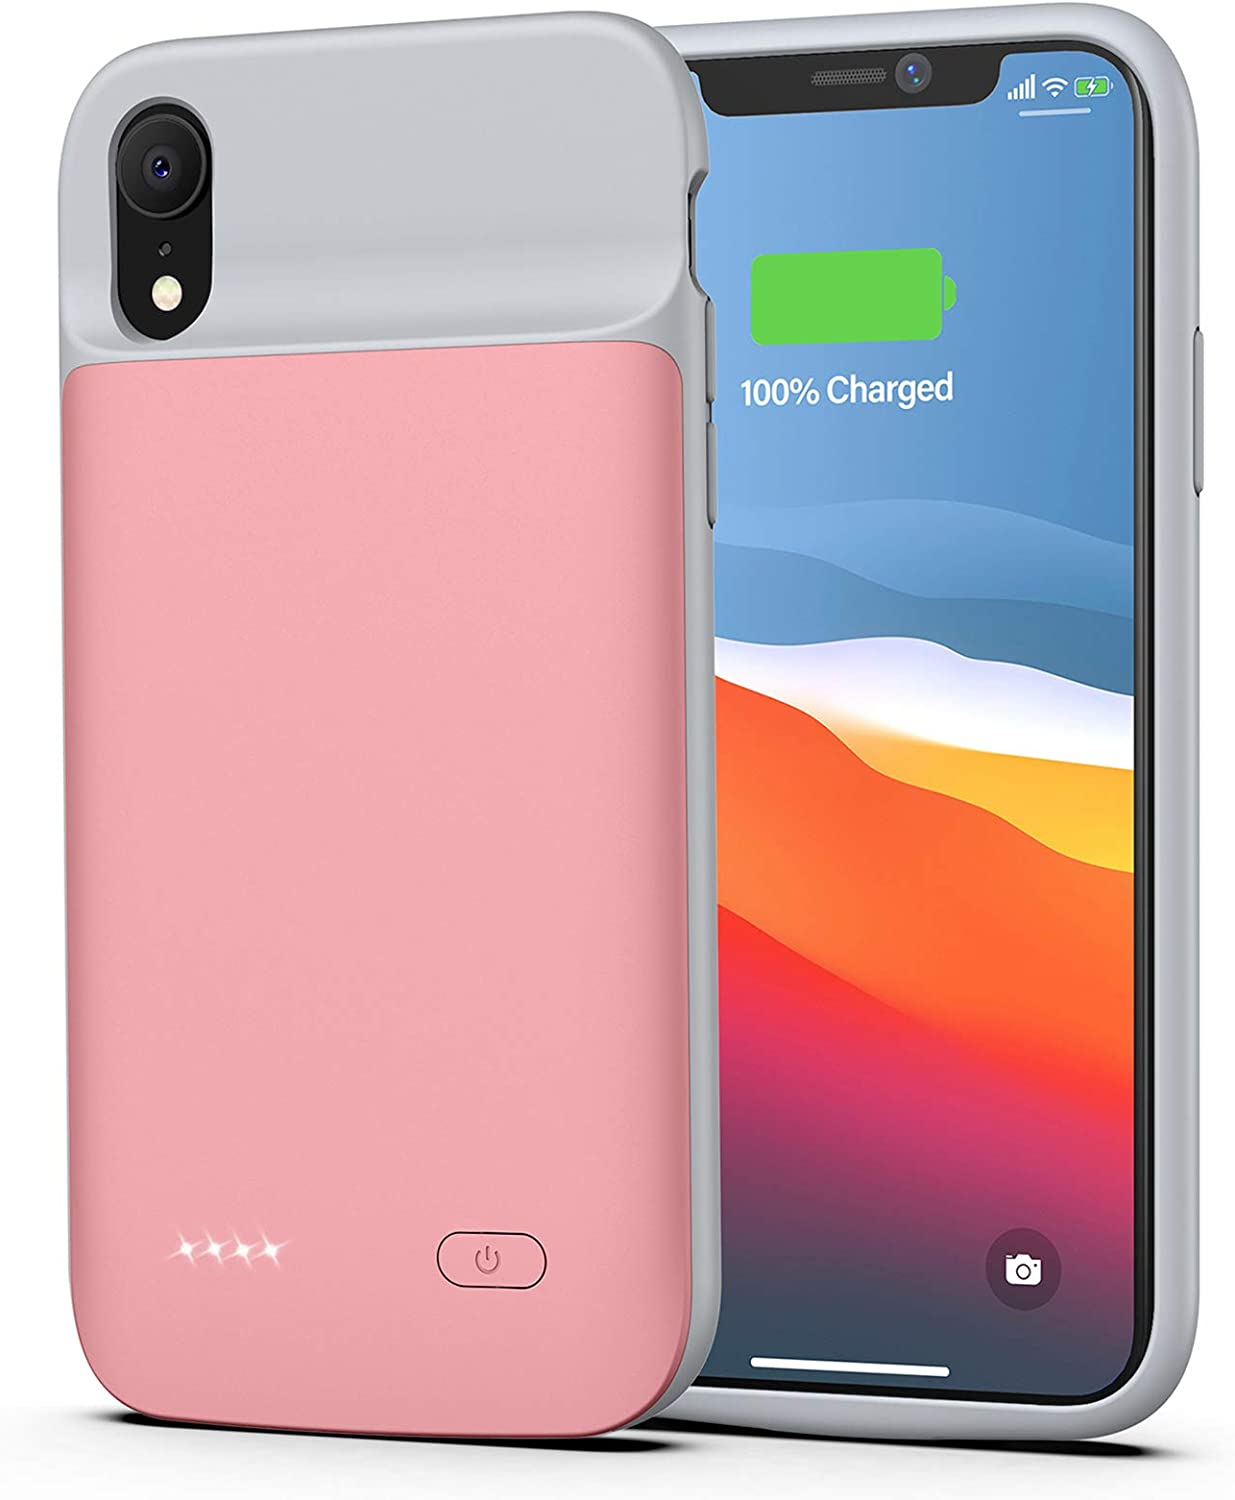 Battery case for iPhone XR, 5000mAh Portable Charging Case Rechargeable Protective Charger Case for iPhone XR (Rose Gold)